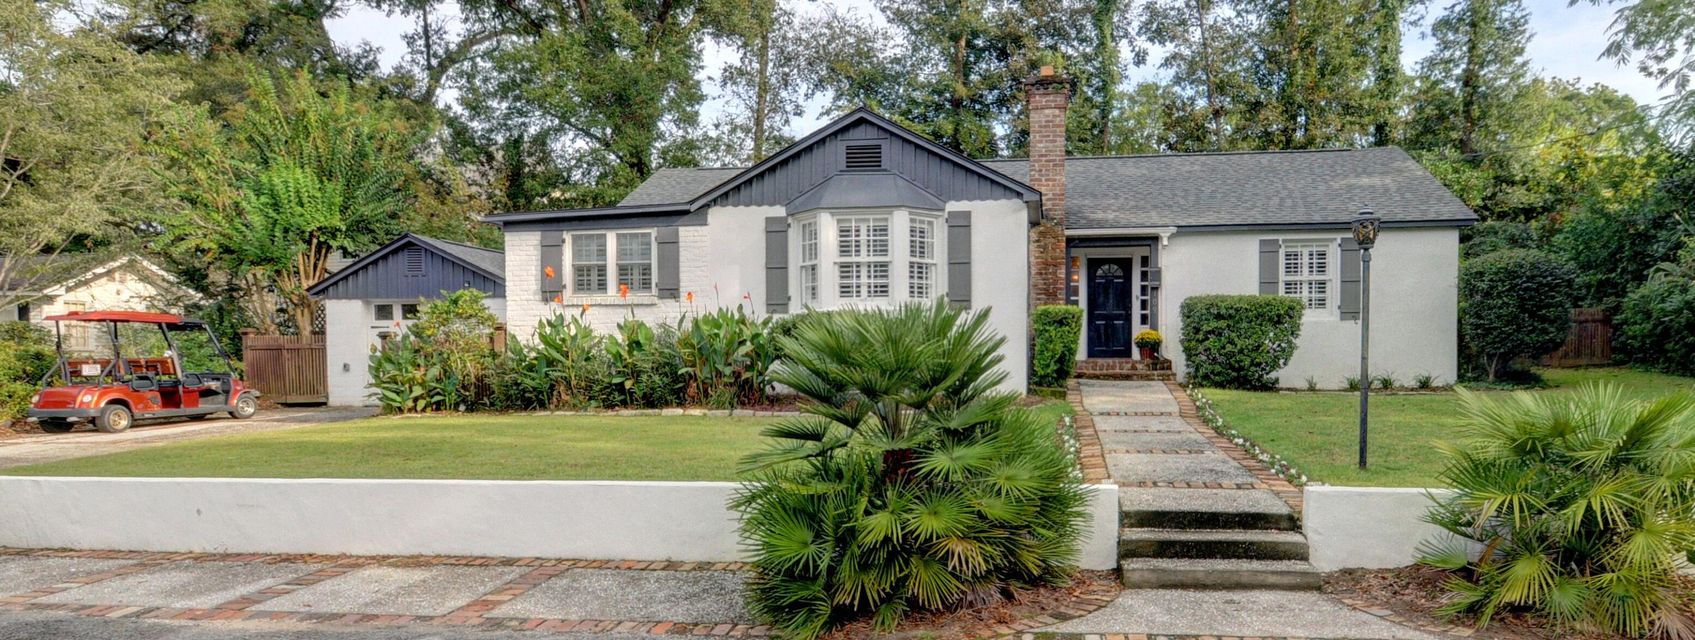 109 Friend Street Mount Pleasant, SC 29464